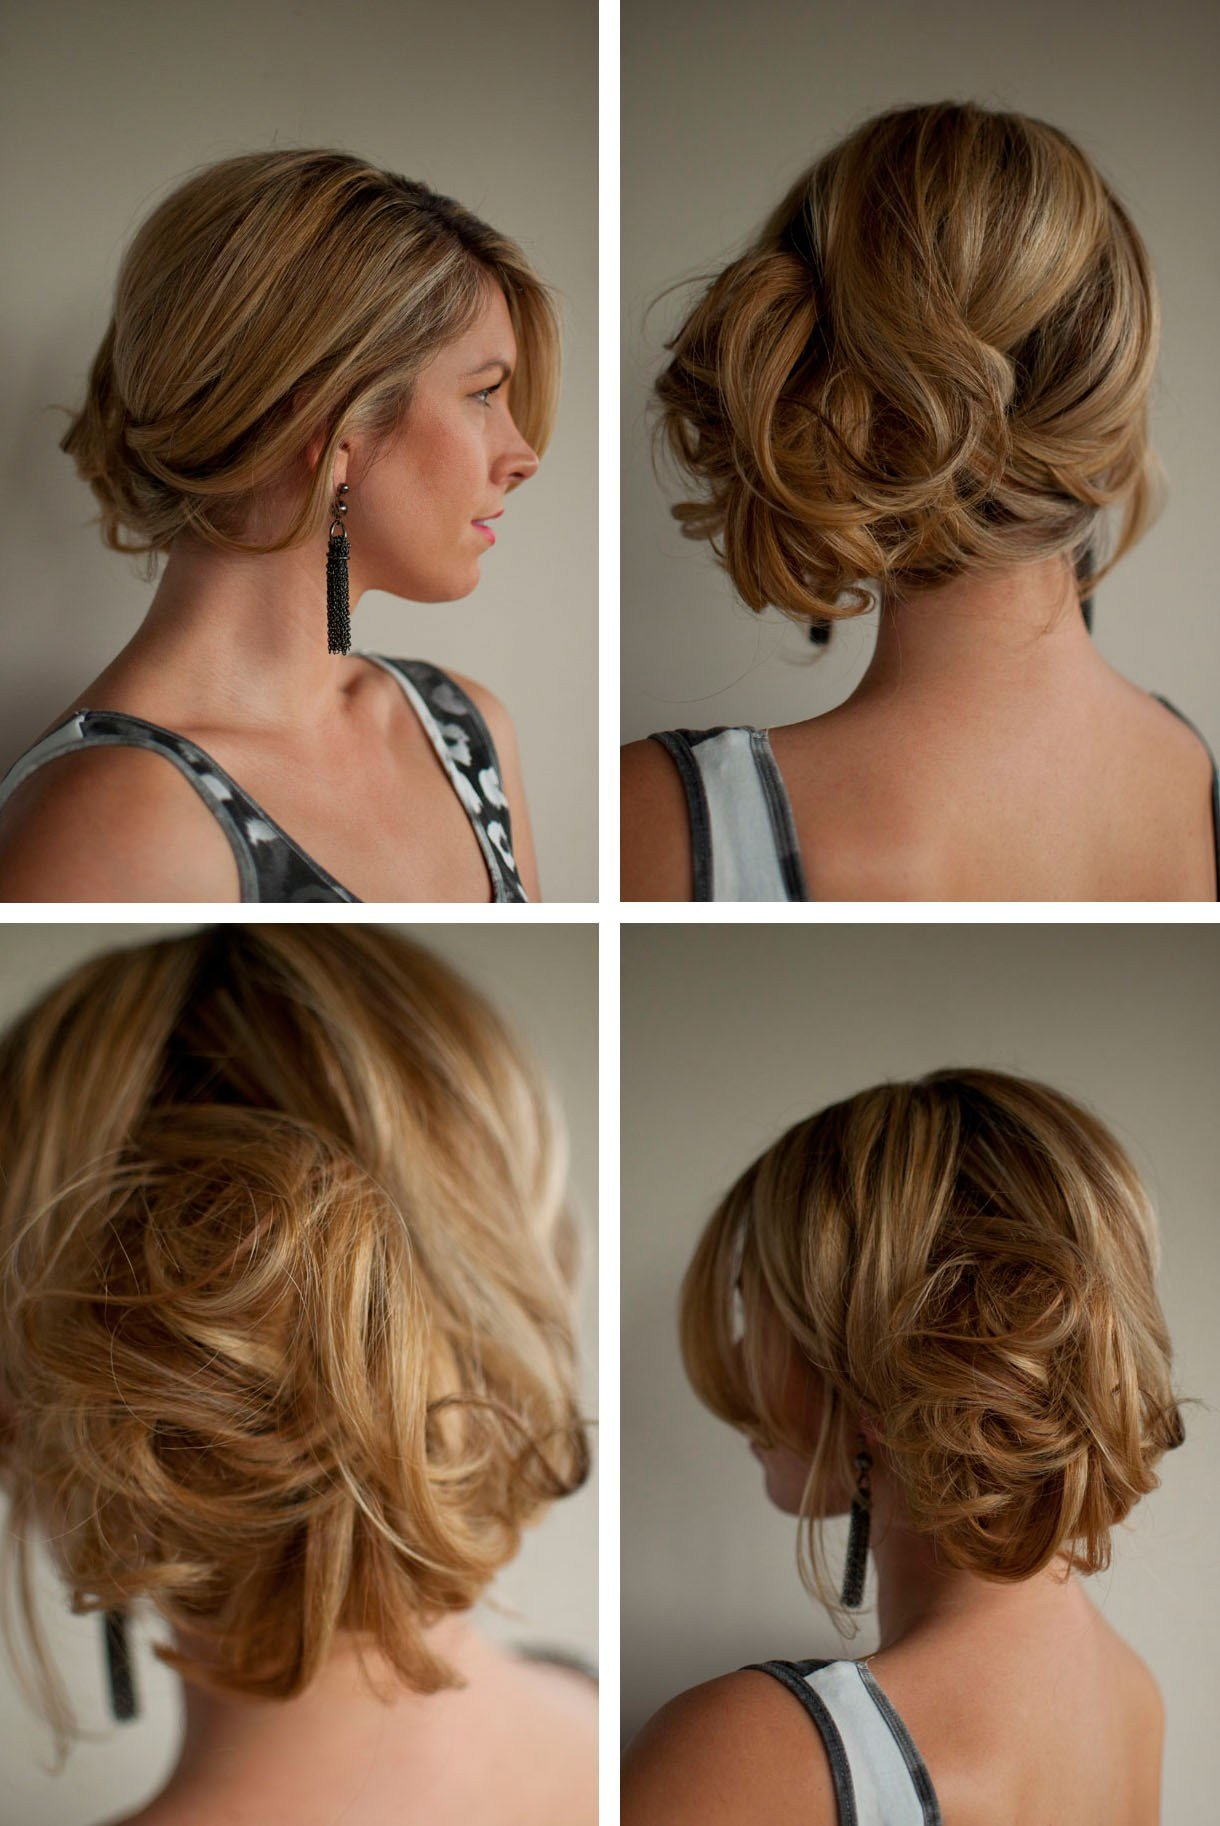 New Hair Romance Reader Question Hairstyles For A 1920S Themed Wedding Hair Romance Ideas With Pictures